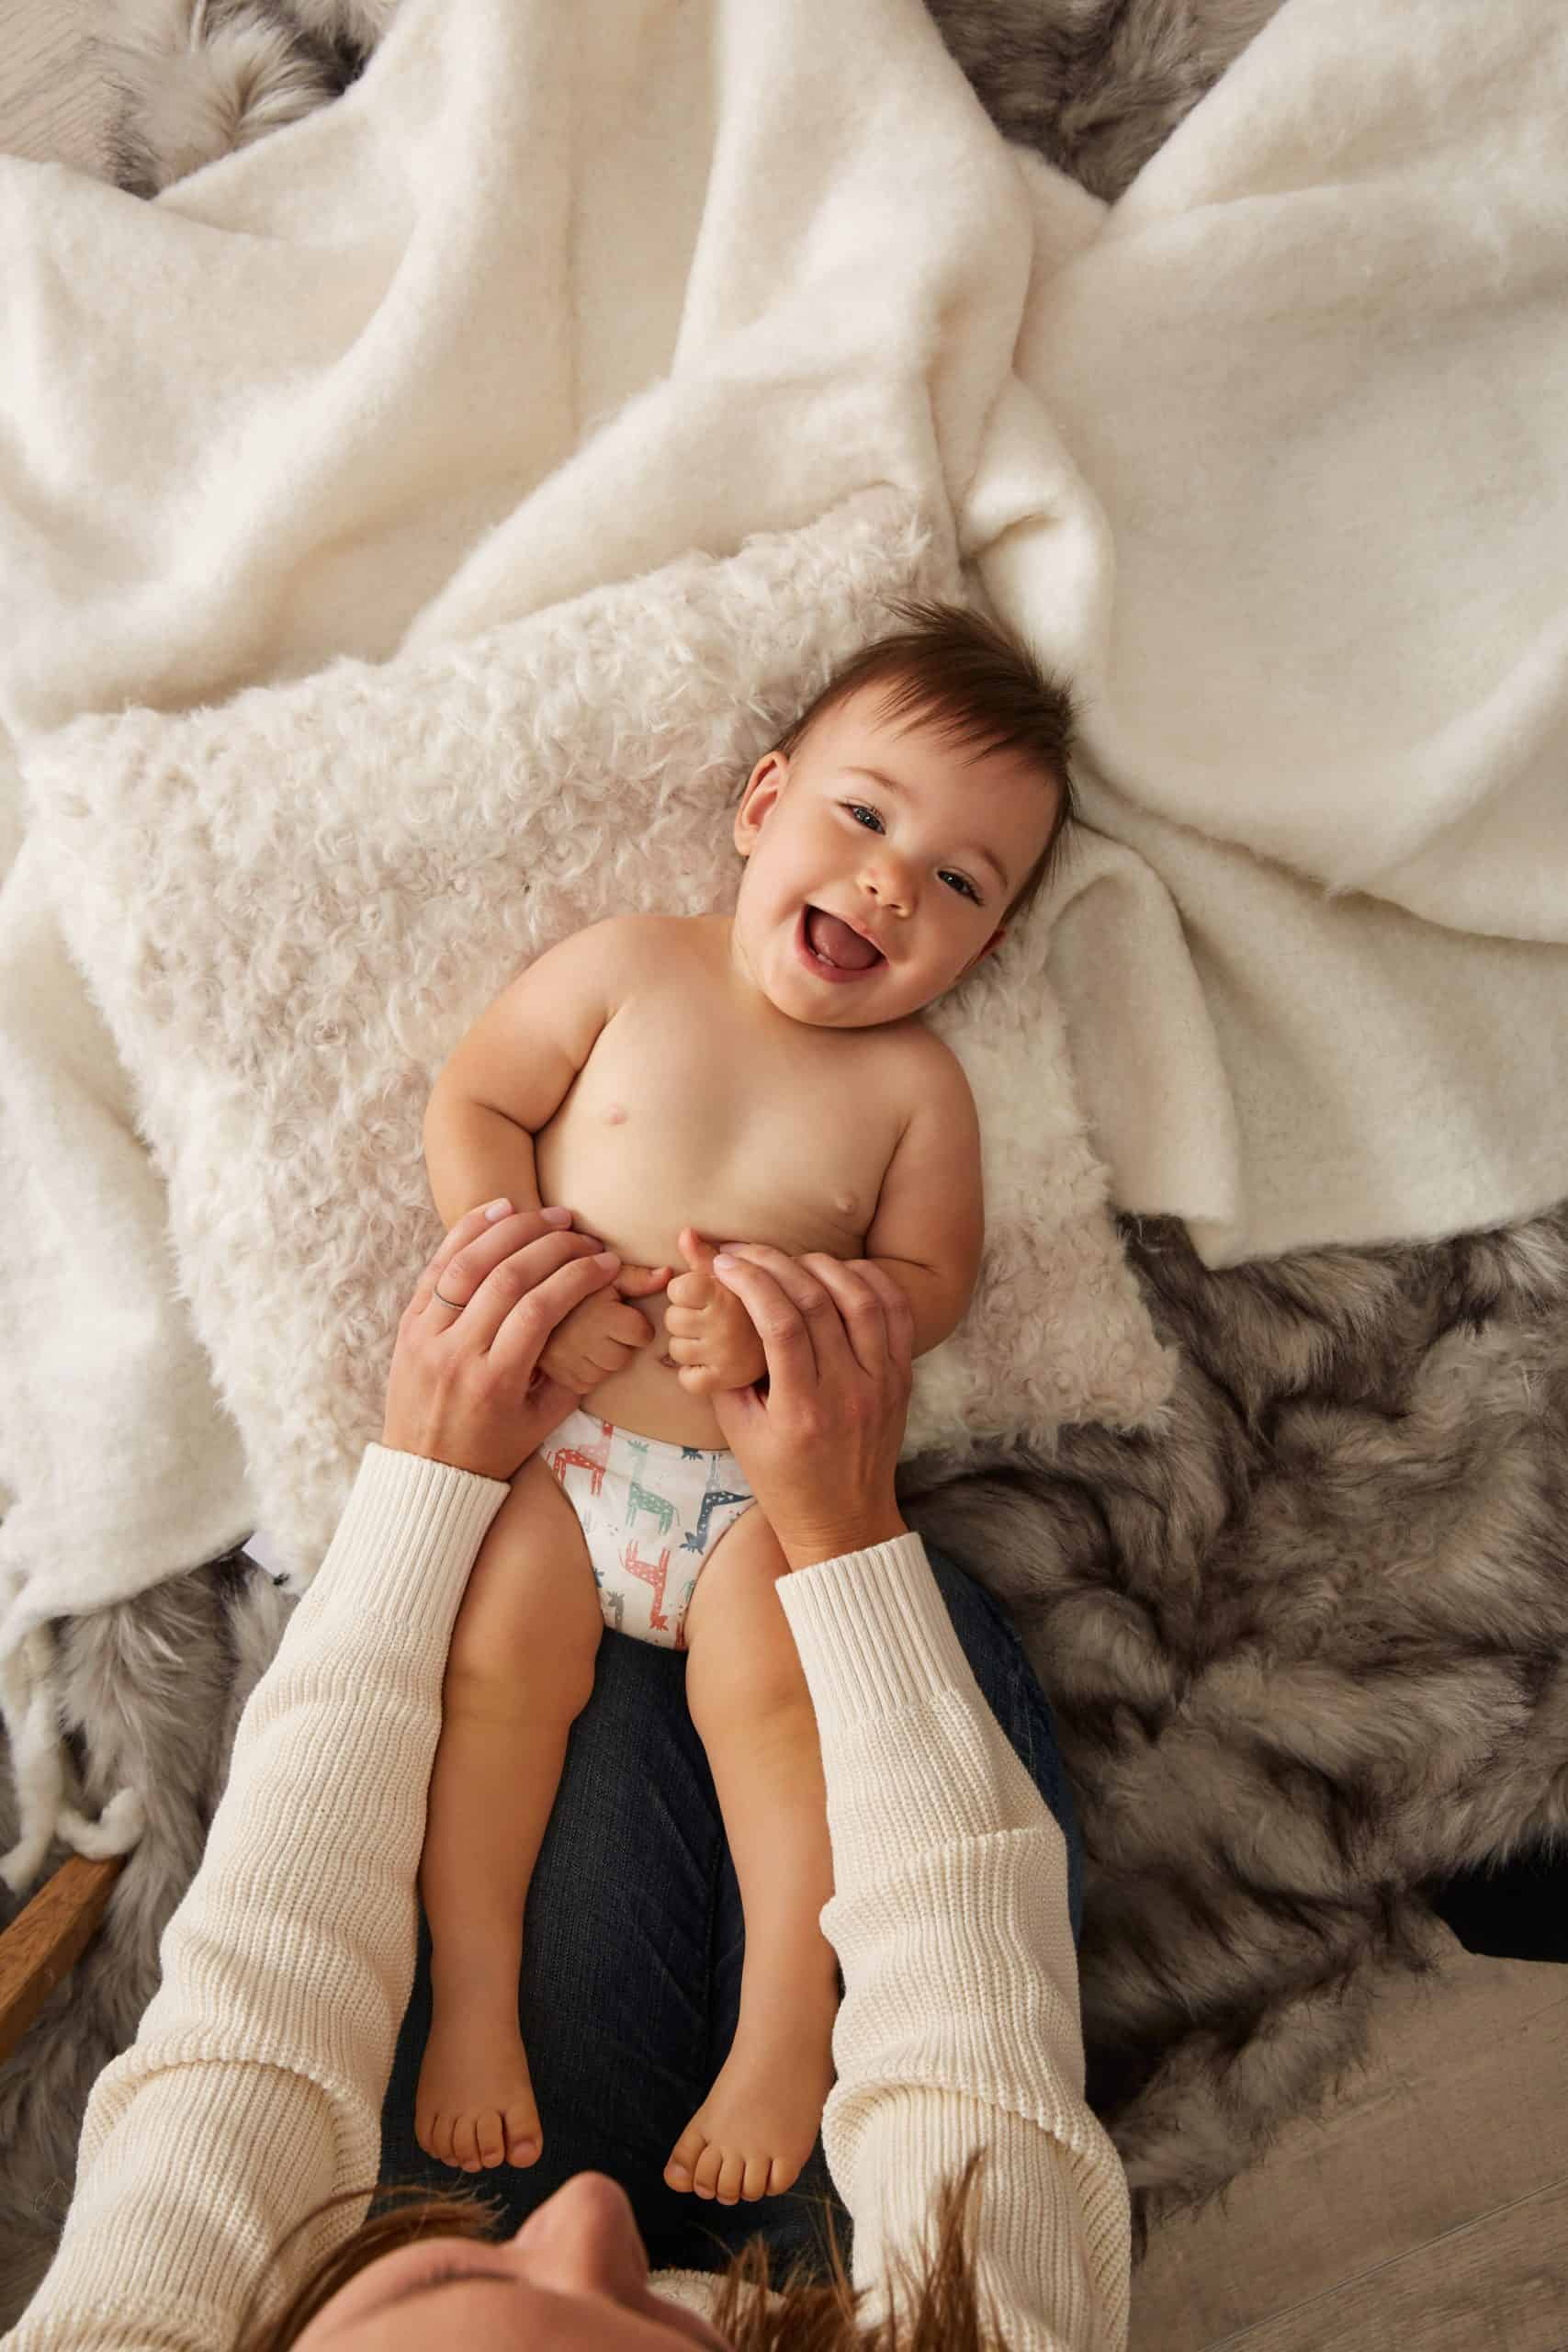 Baby Development: Growth And Stages